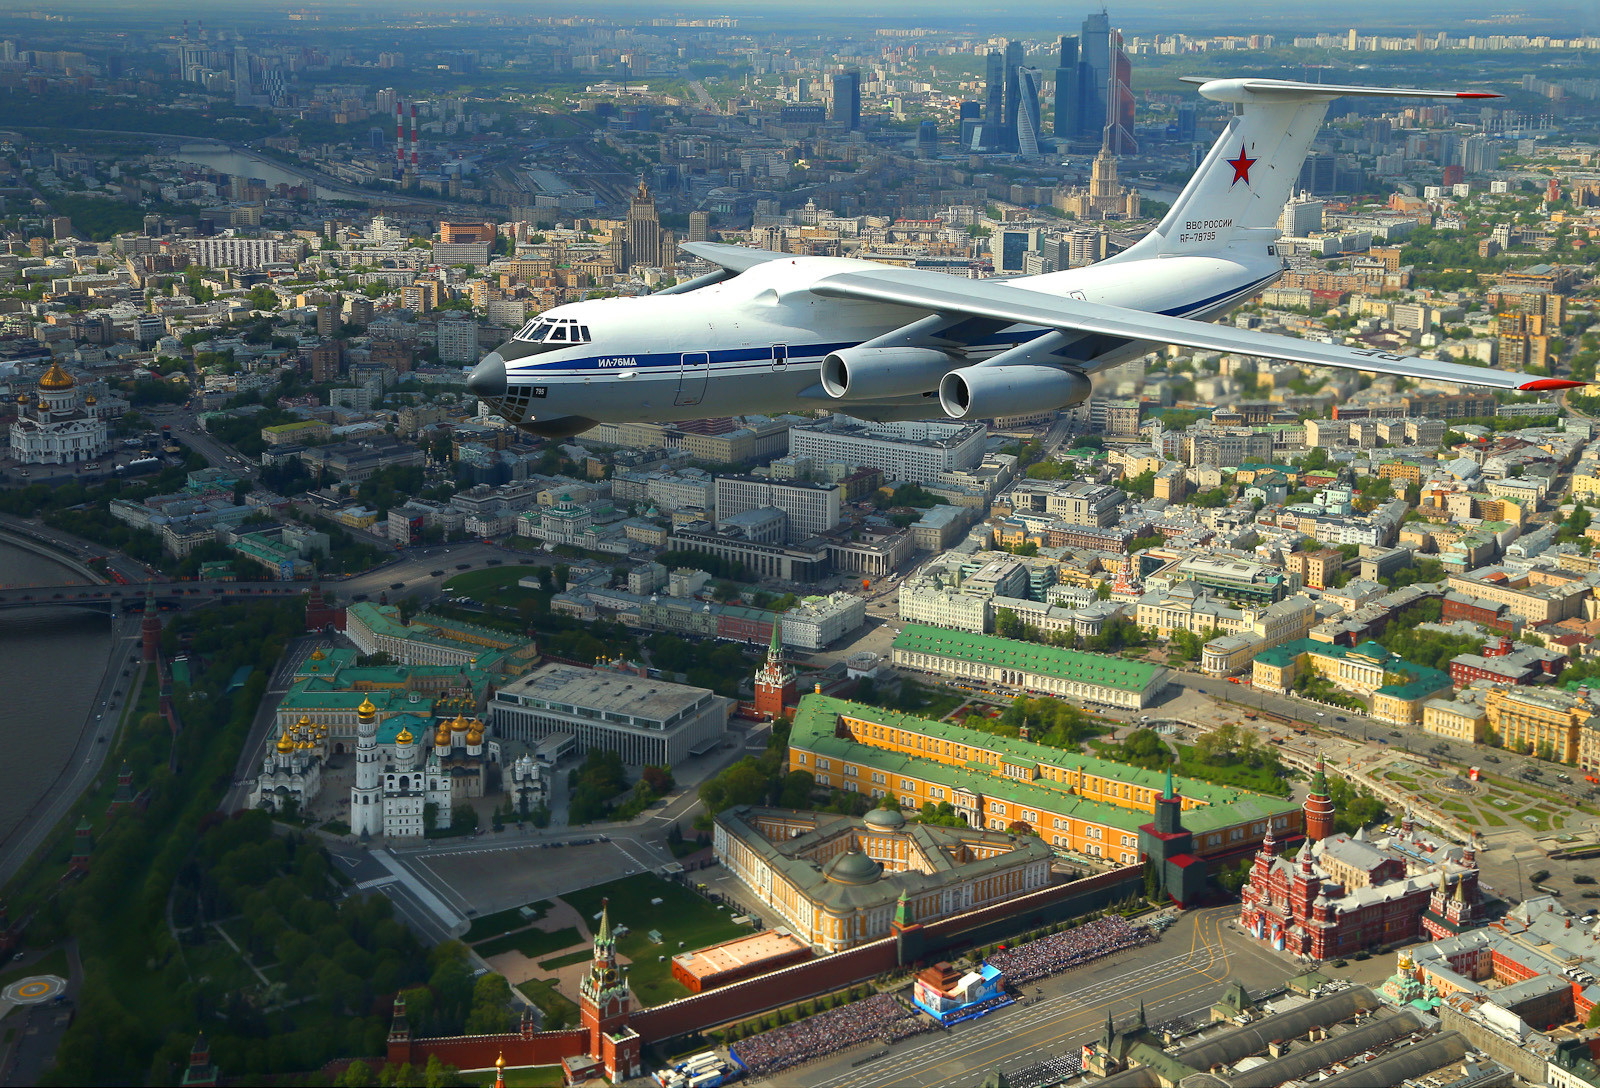 The Ilyushin Il-76, a multi-purpose four-engine turbofan strategic airlifter, above the Kremlin.